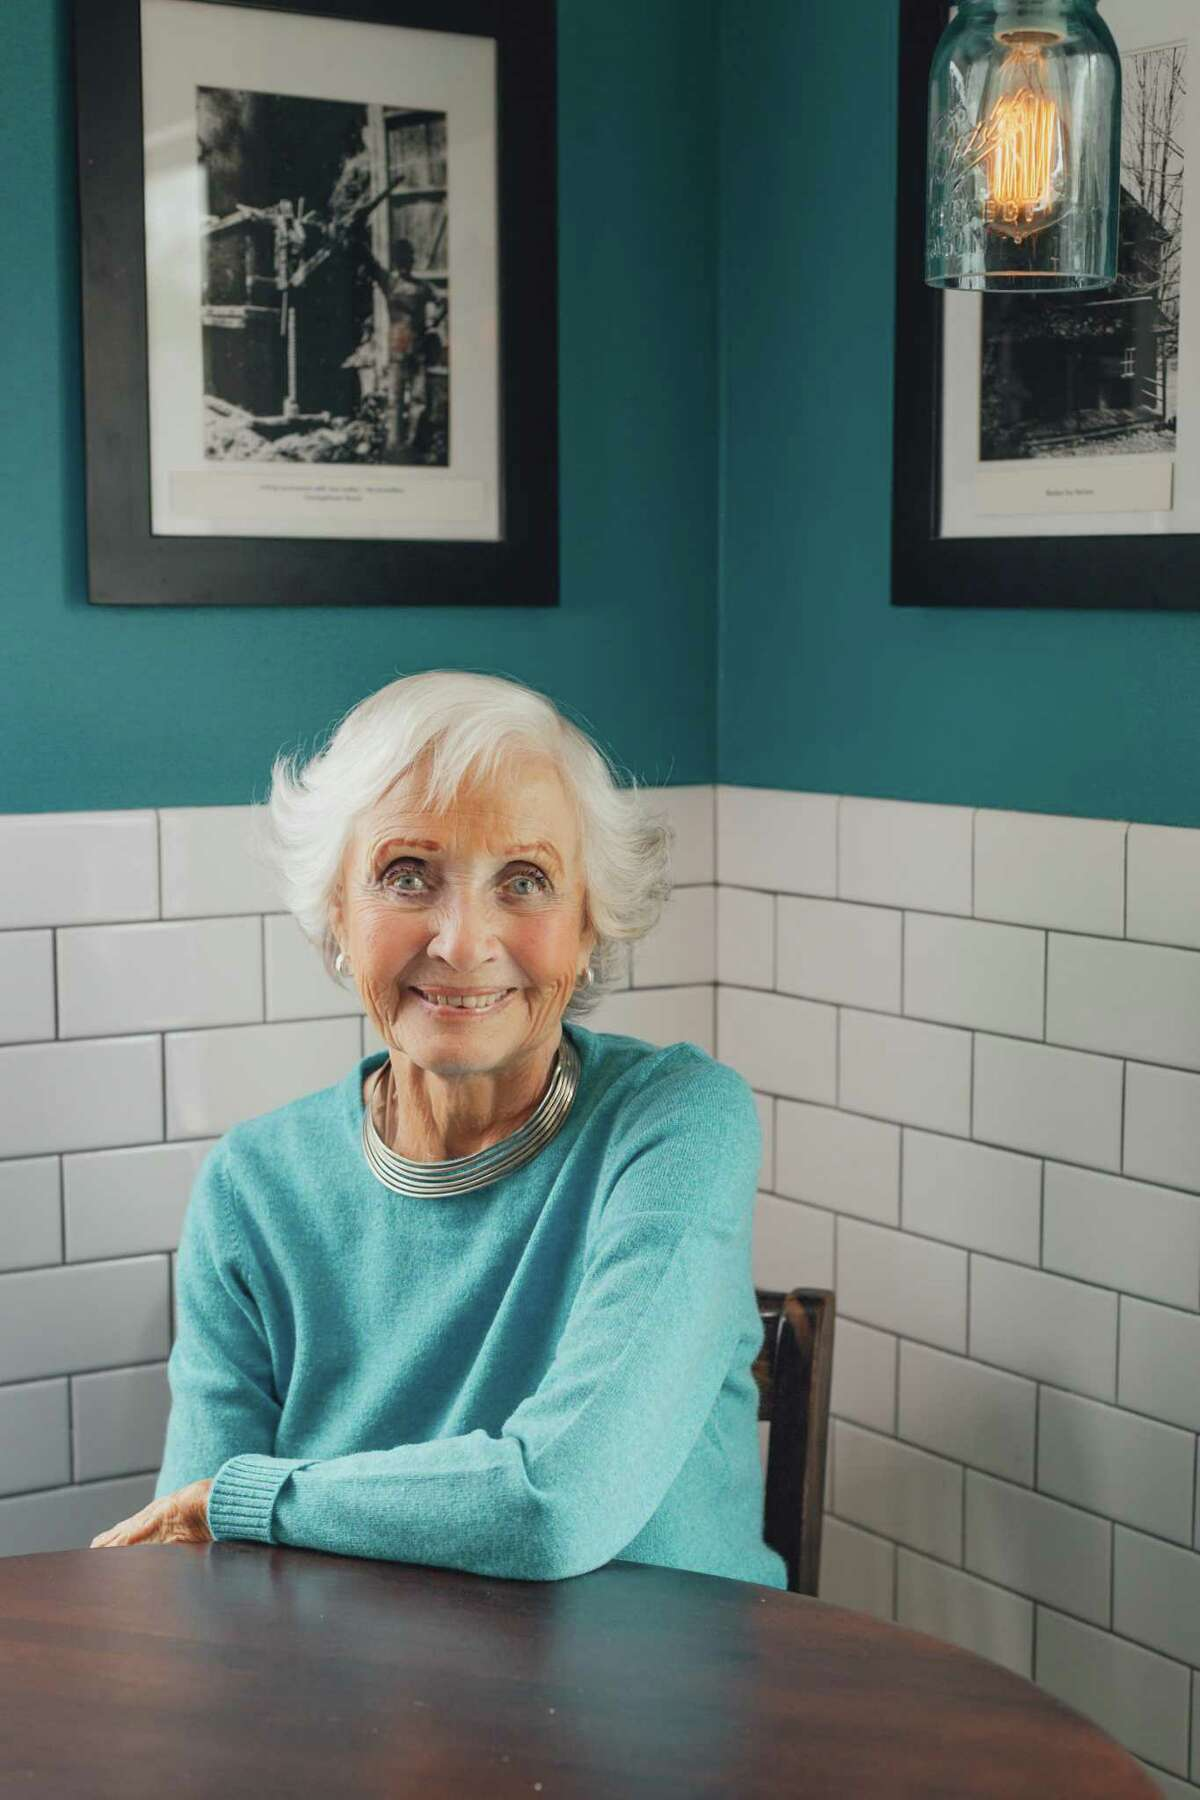 Actress Jane Powell at the Lunch Box in Weston.